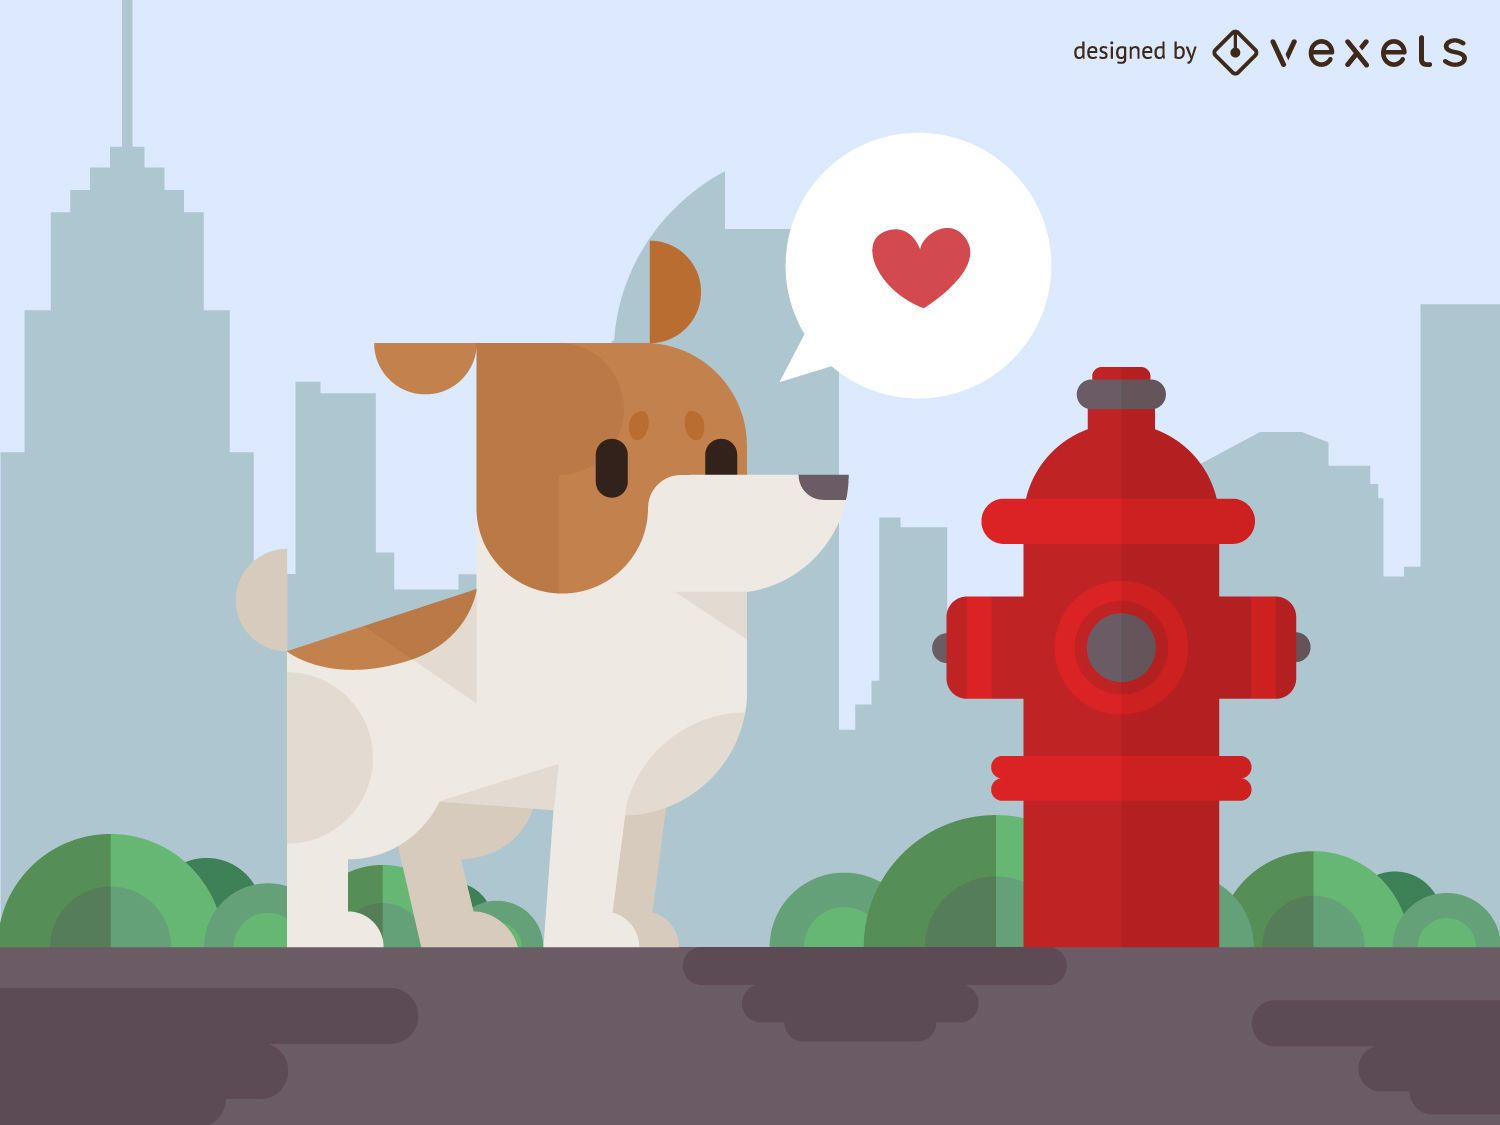 Geometric dog with fire hydrant